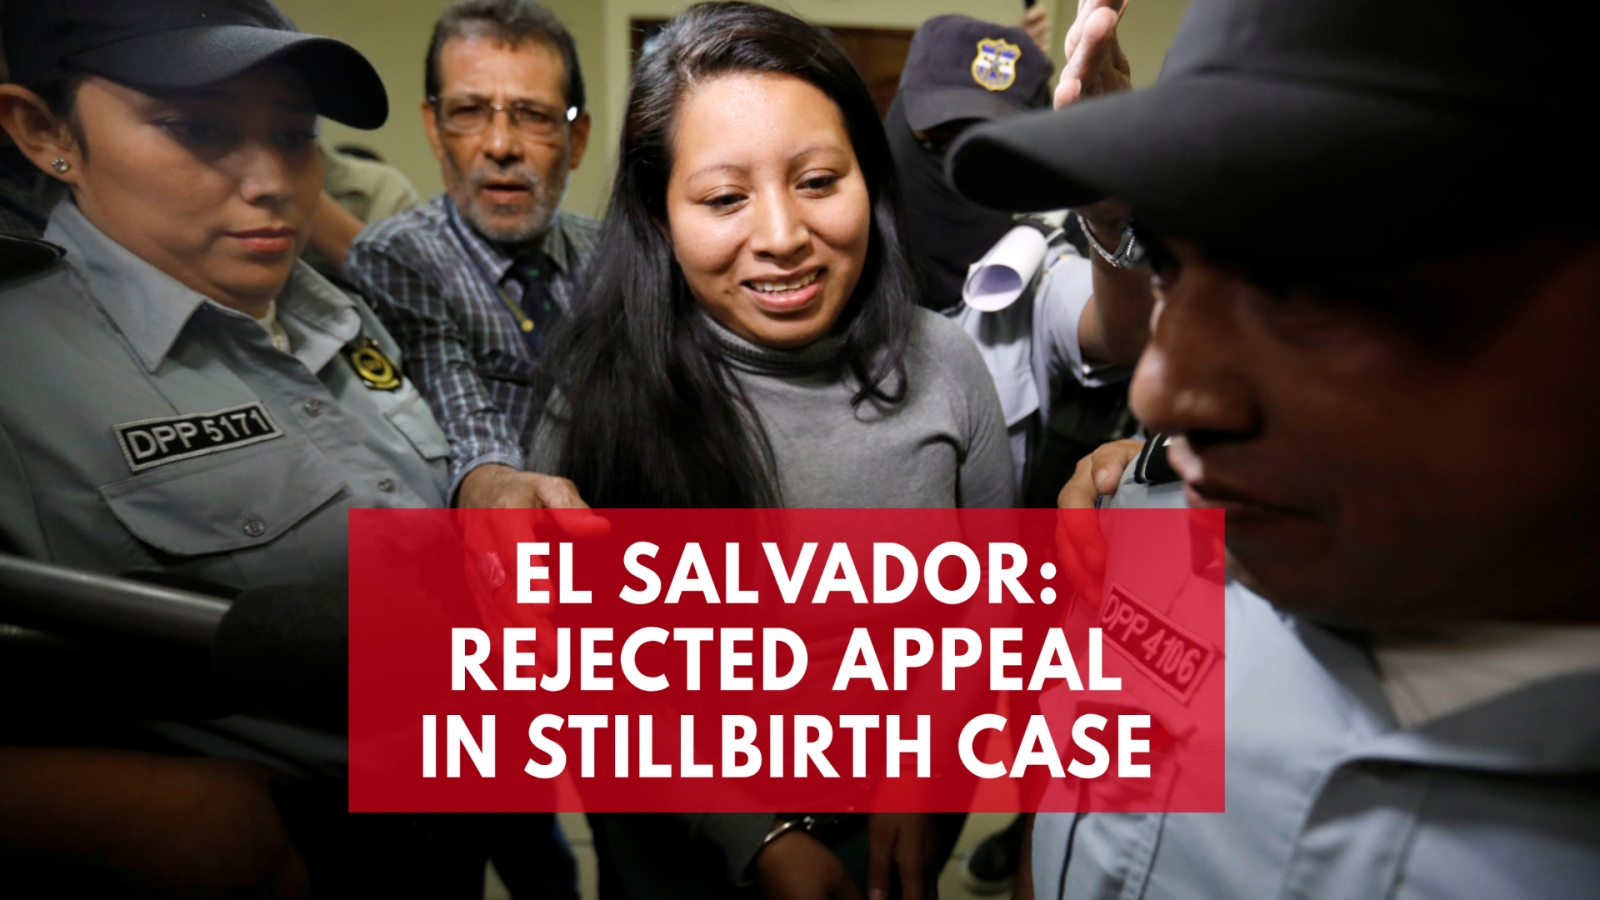 El Salvador court upholds woman's 30-year sentence in stillbirth case